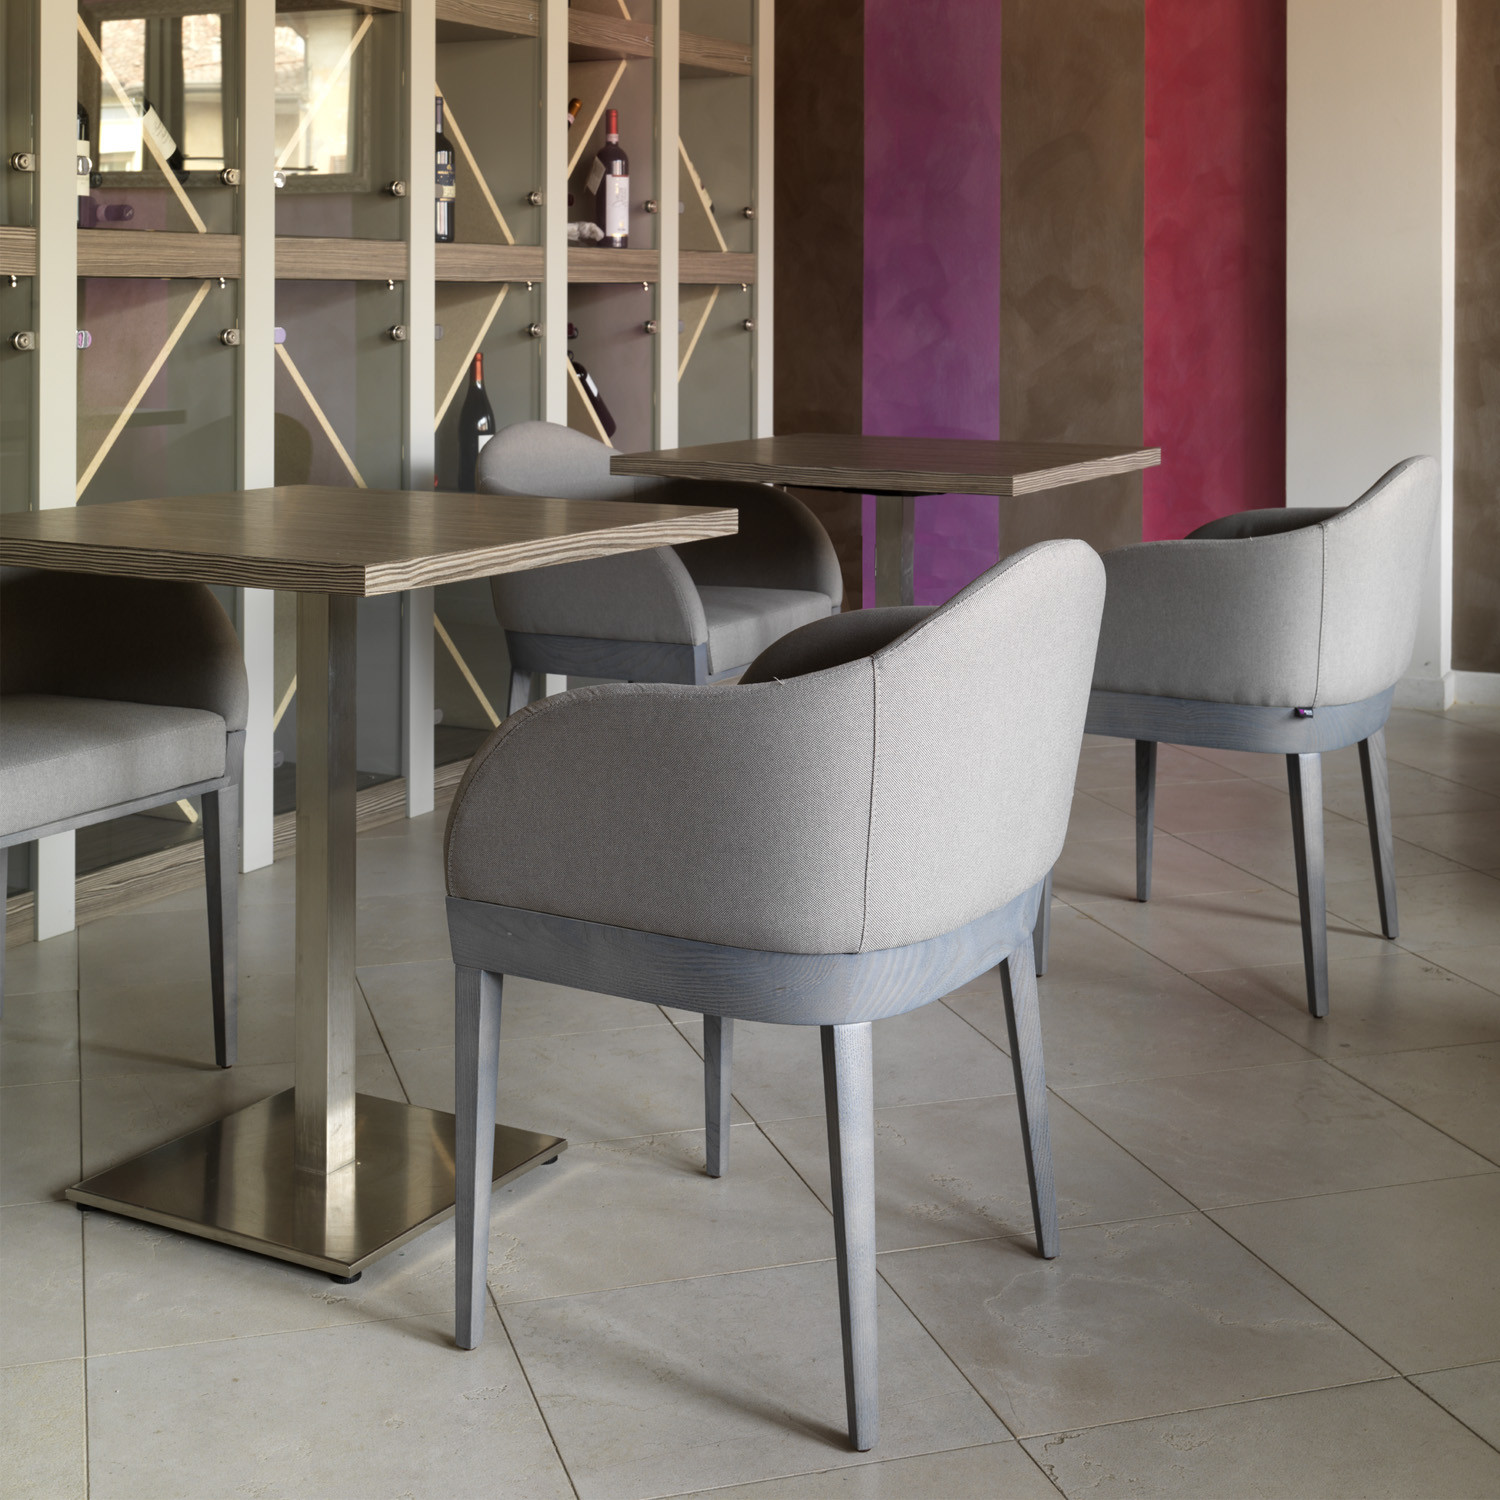 Agata Chairs by Apres Furniture